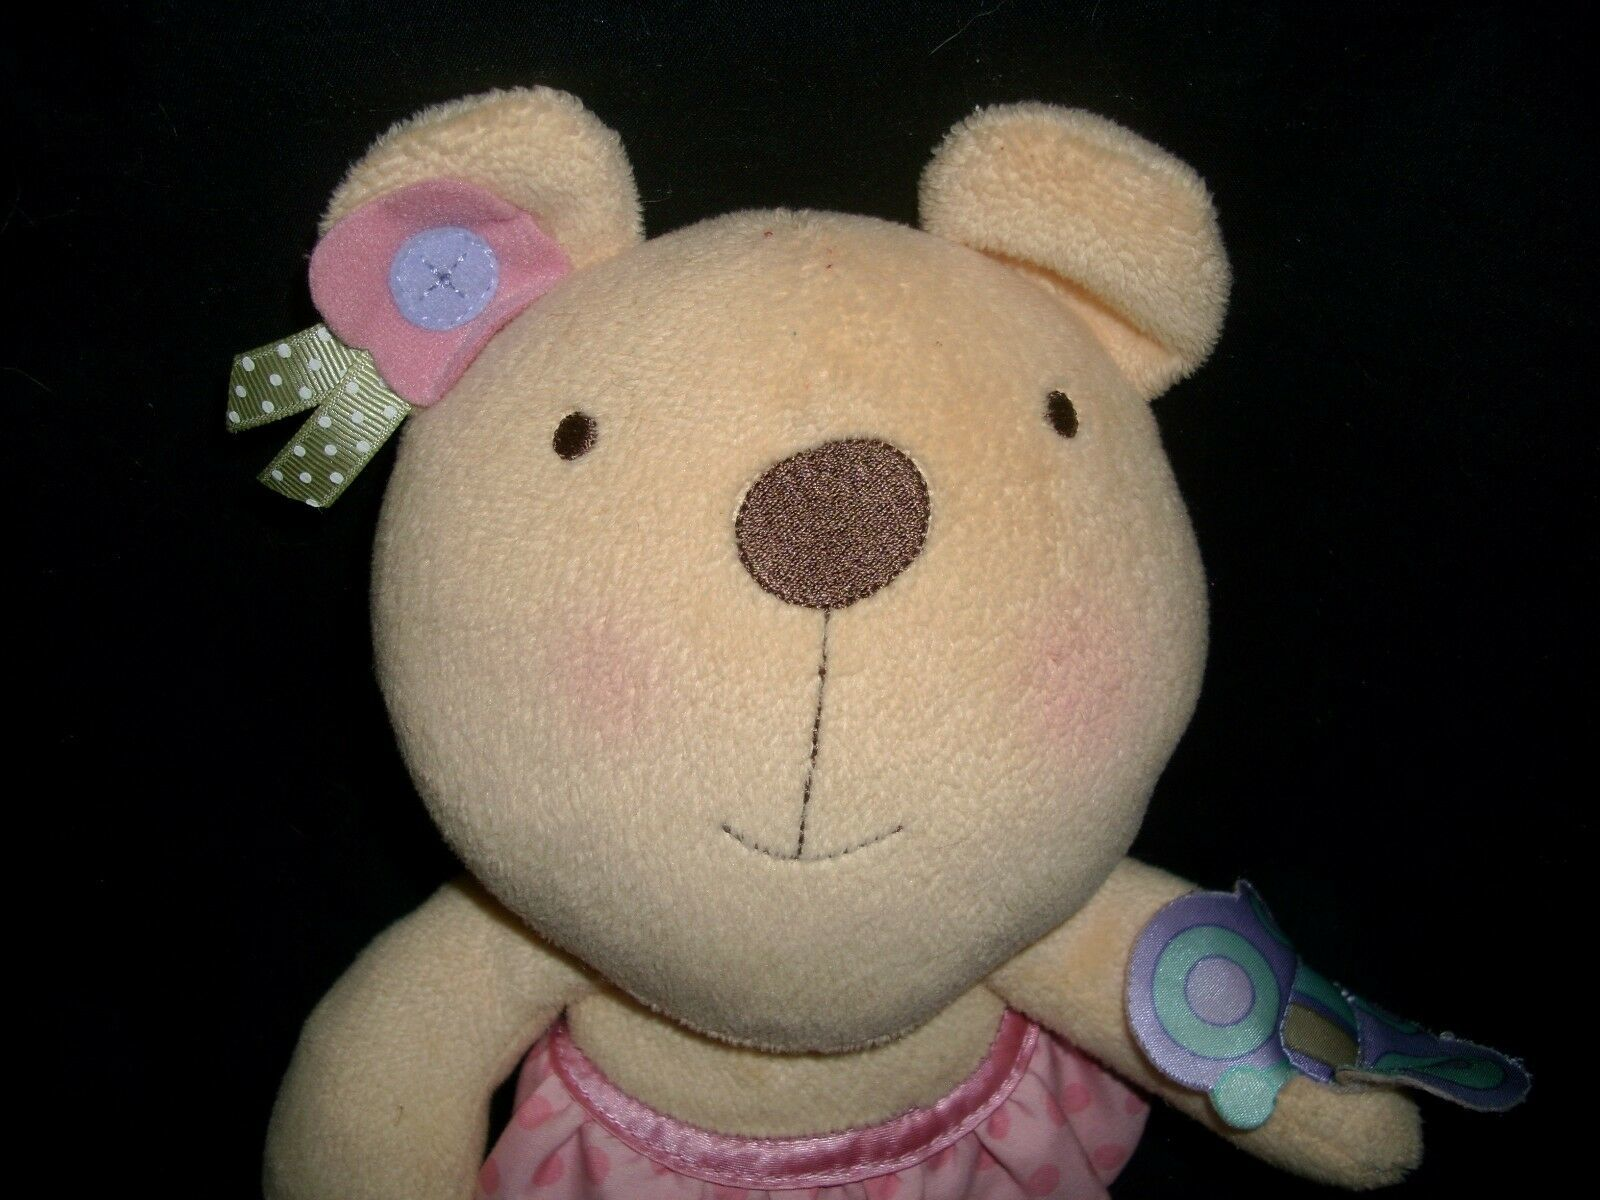 FISHER PRICE 2009 TEDDY BEAR R6794 CLUTCH CHIME RATTLE STUFFED ANIMAL PLUSH TOY image 2